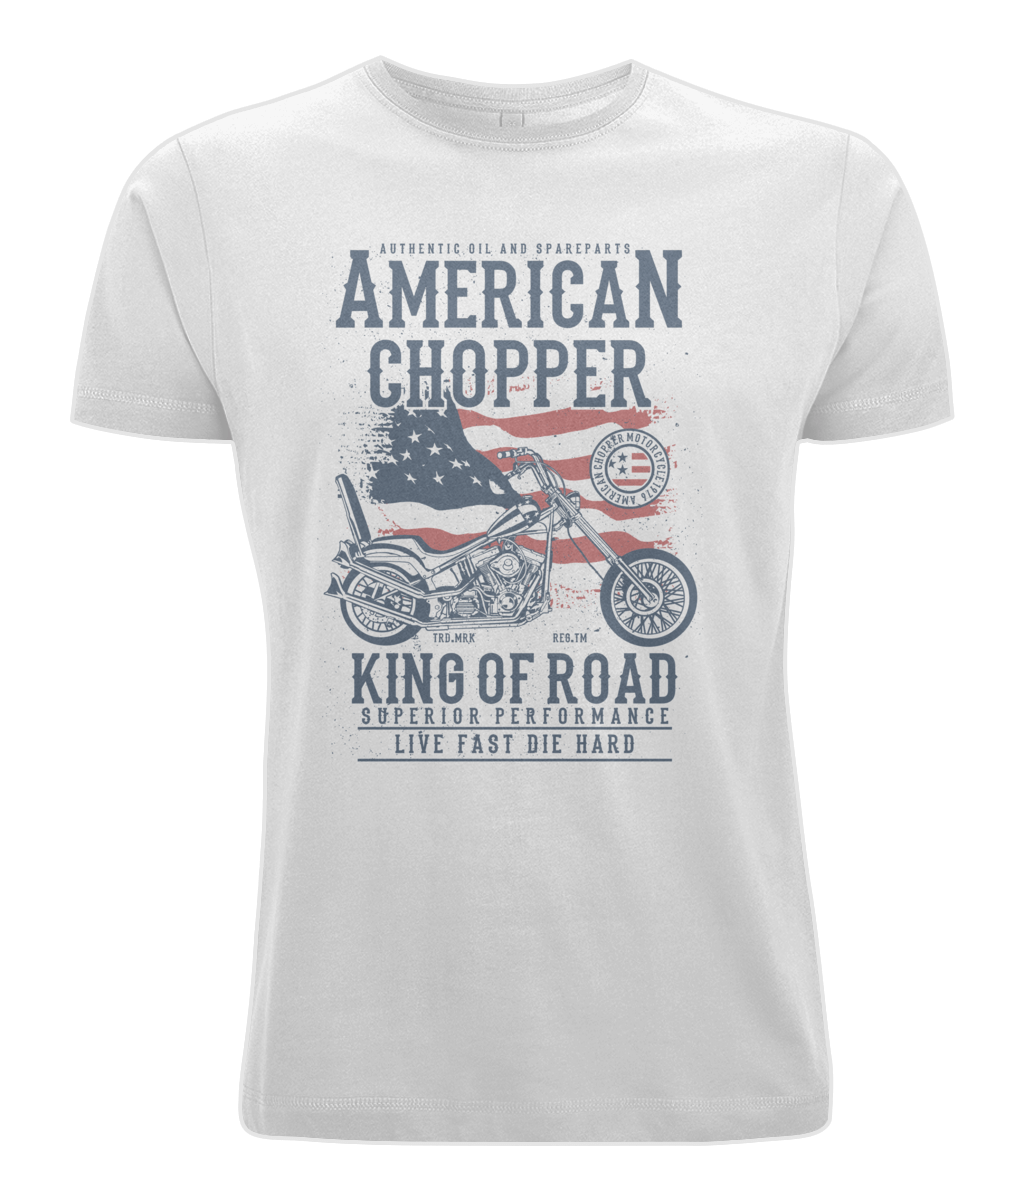 American Chopper t-shirt UK